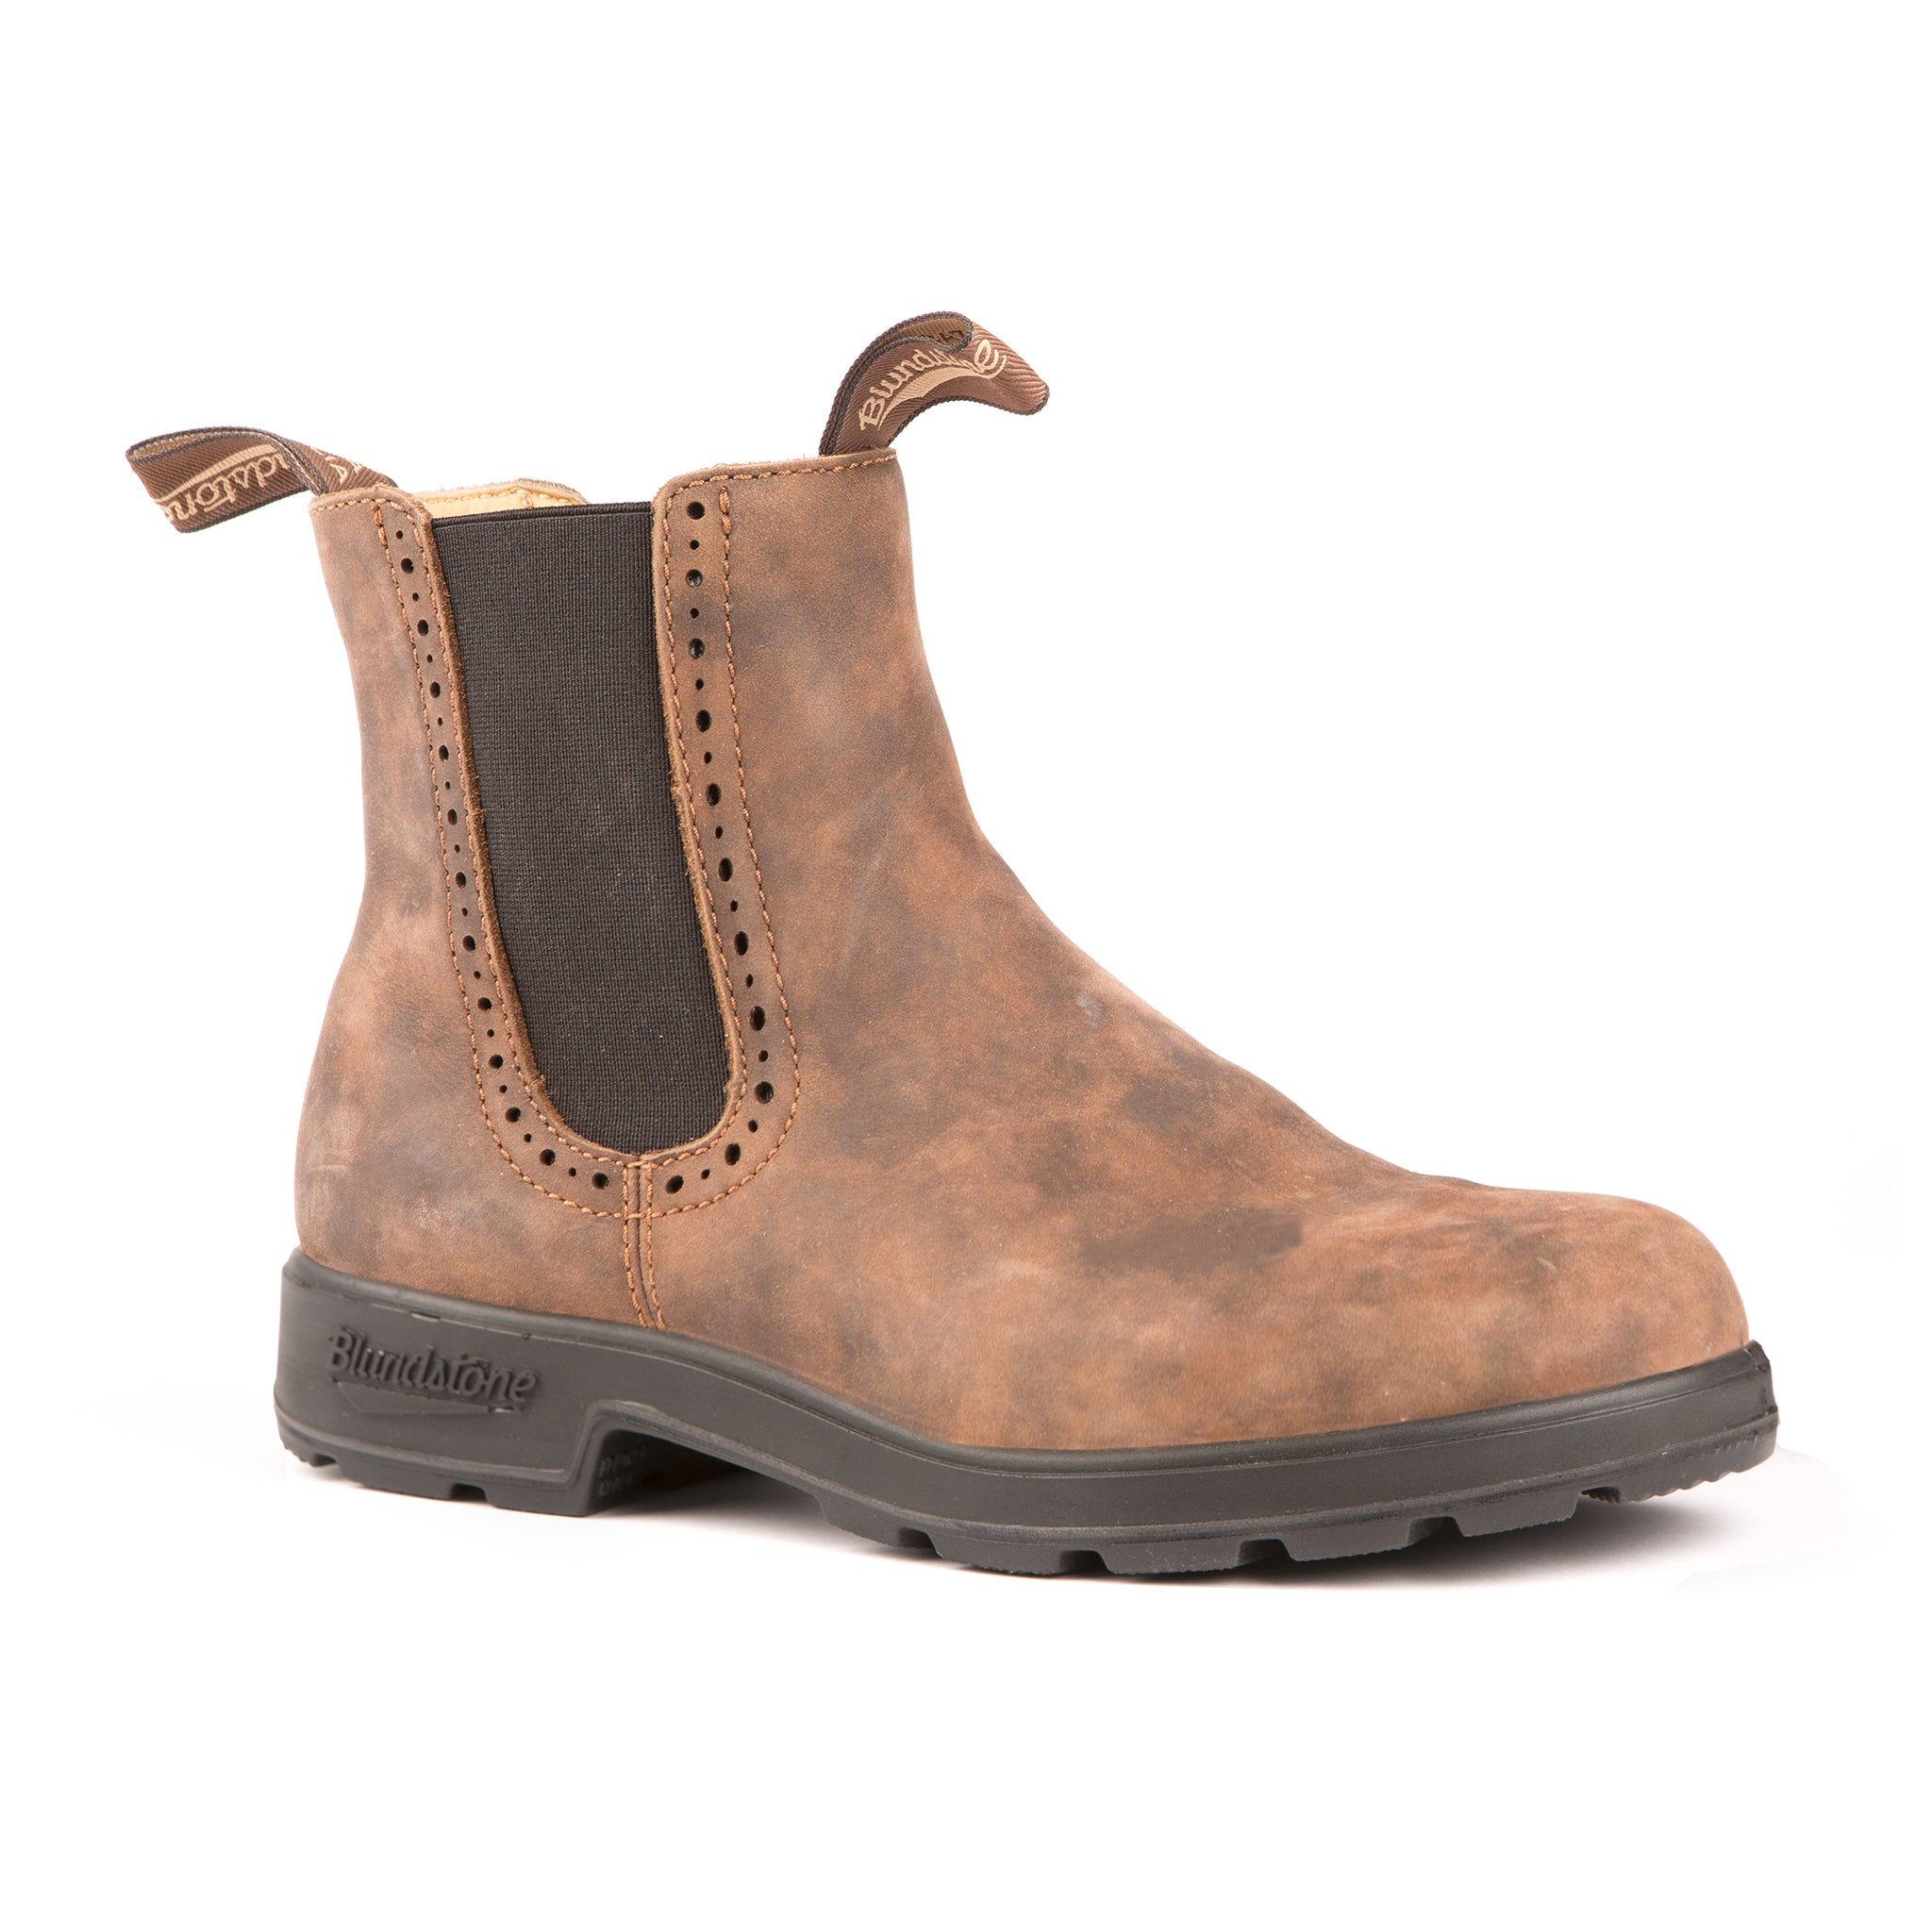 Blundstone Women's Boots Series Hi Top Chelsea treads comfortably in town or country.